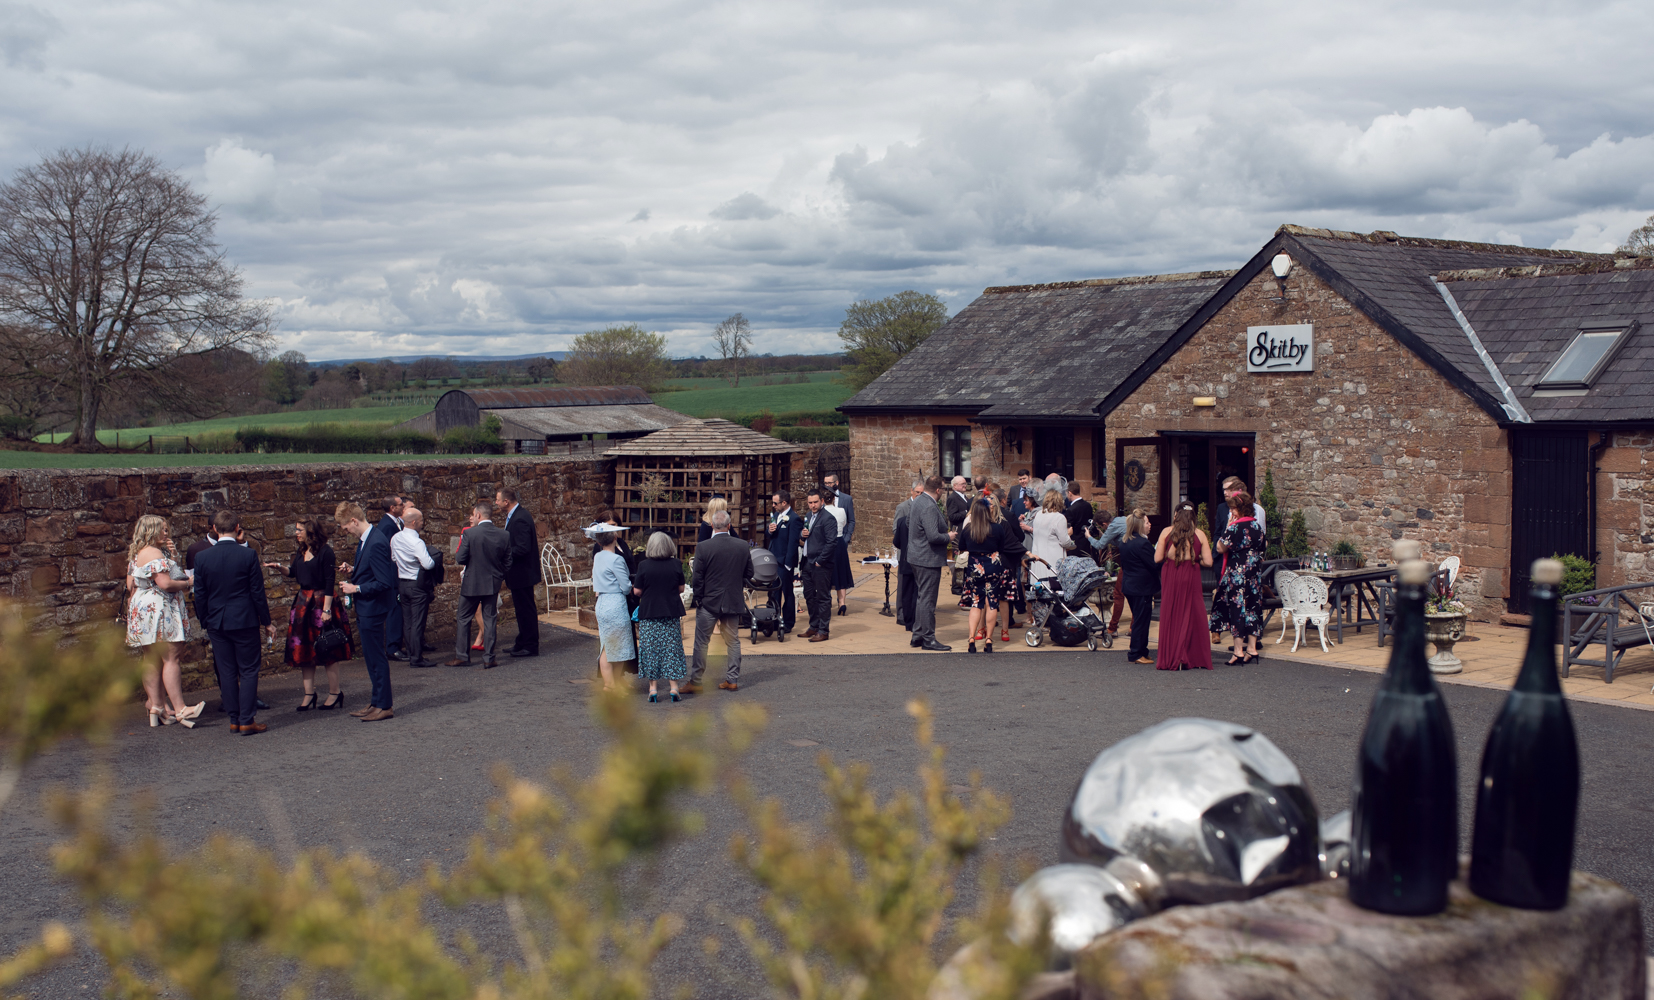 An outdoor view of the wedding venue at Skitby